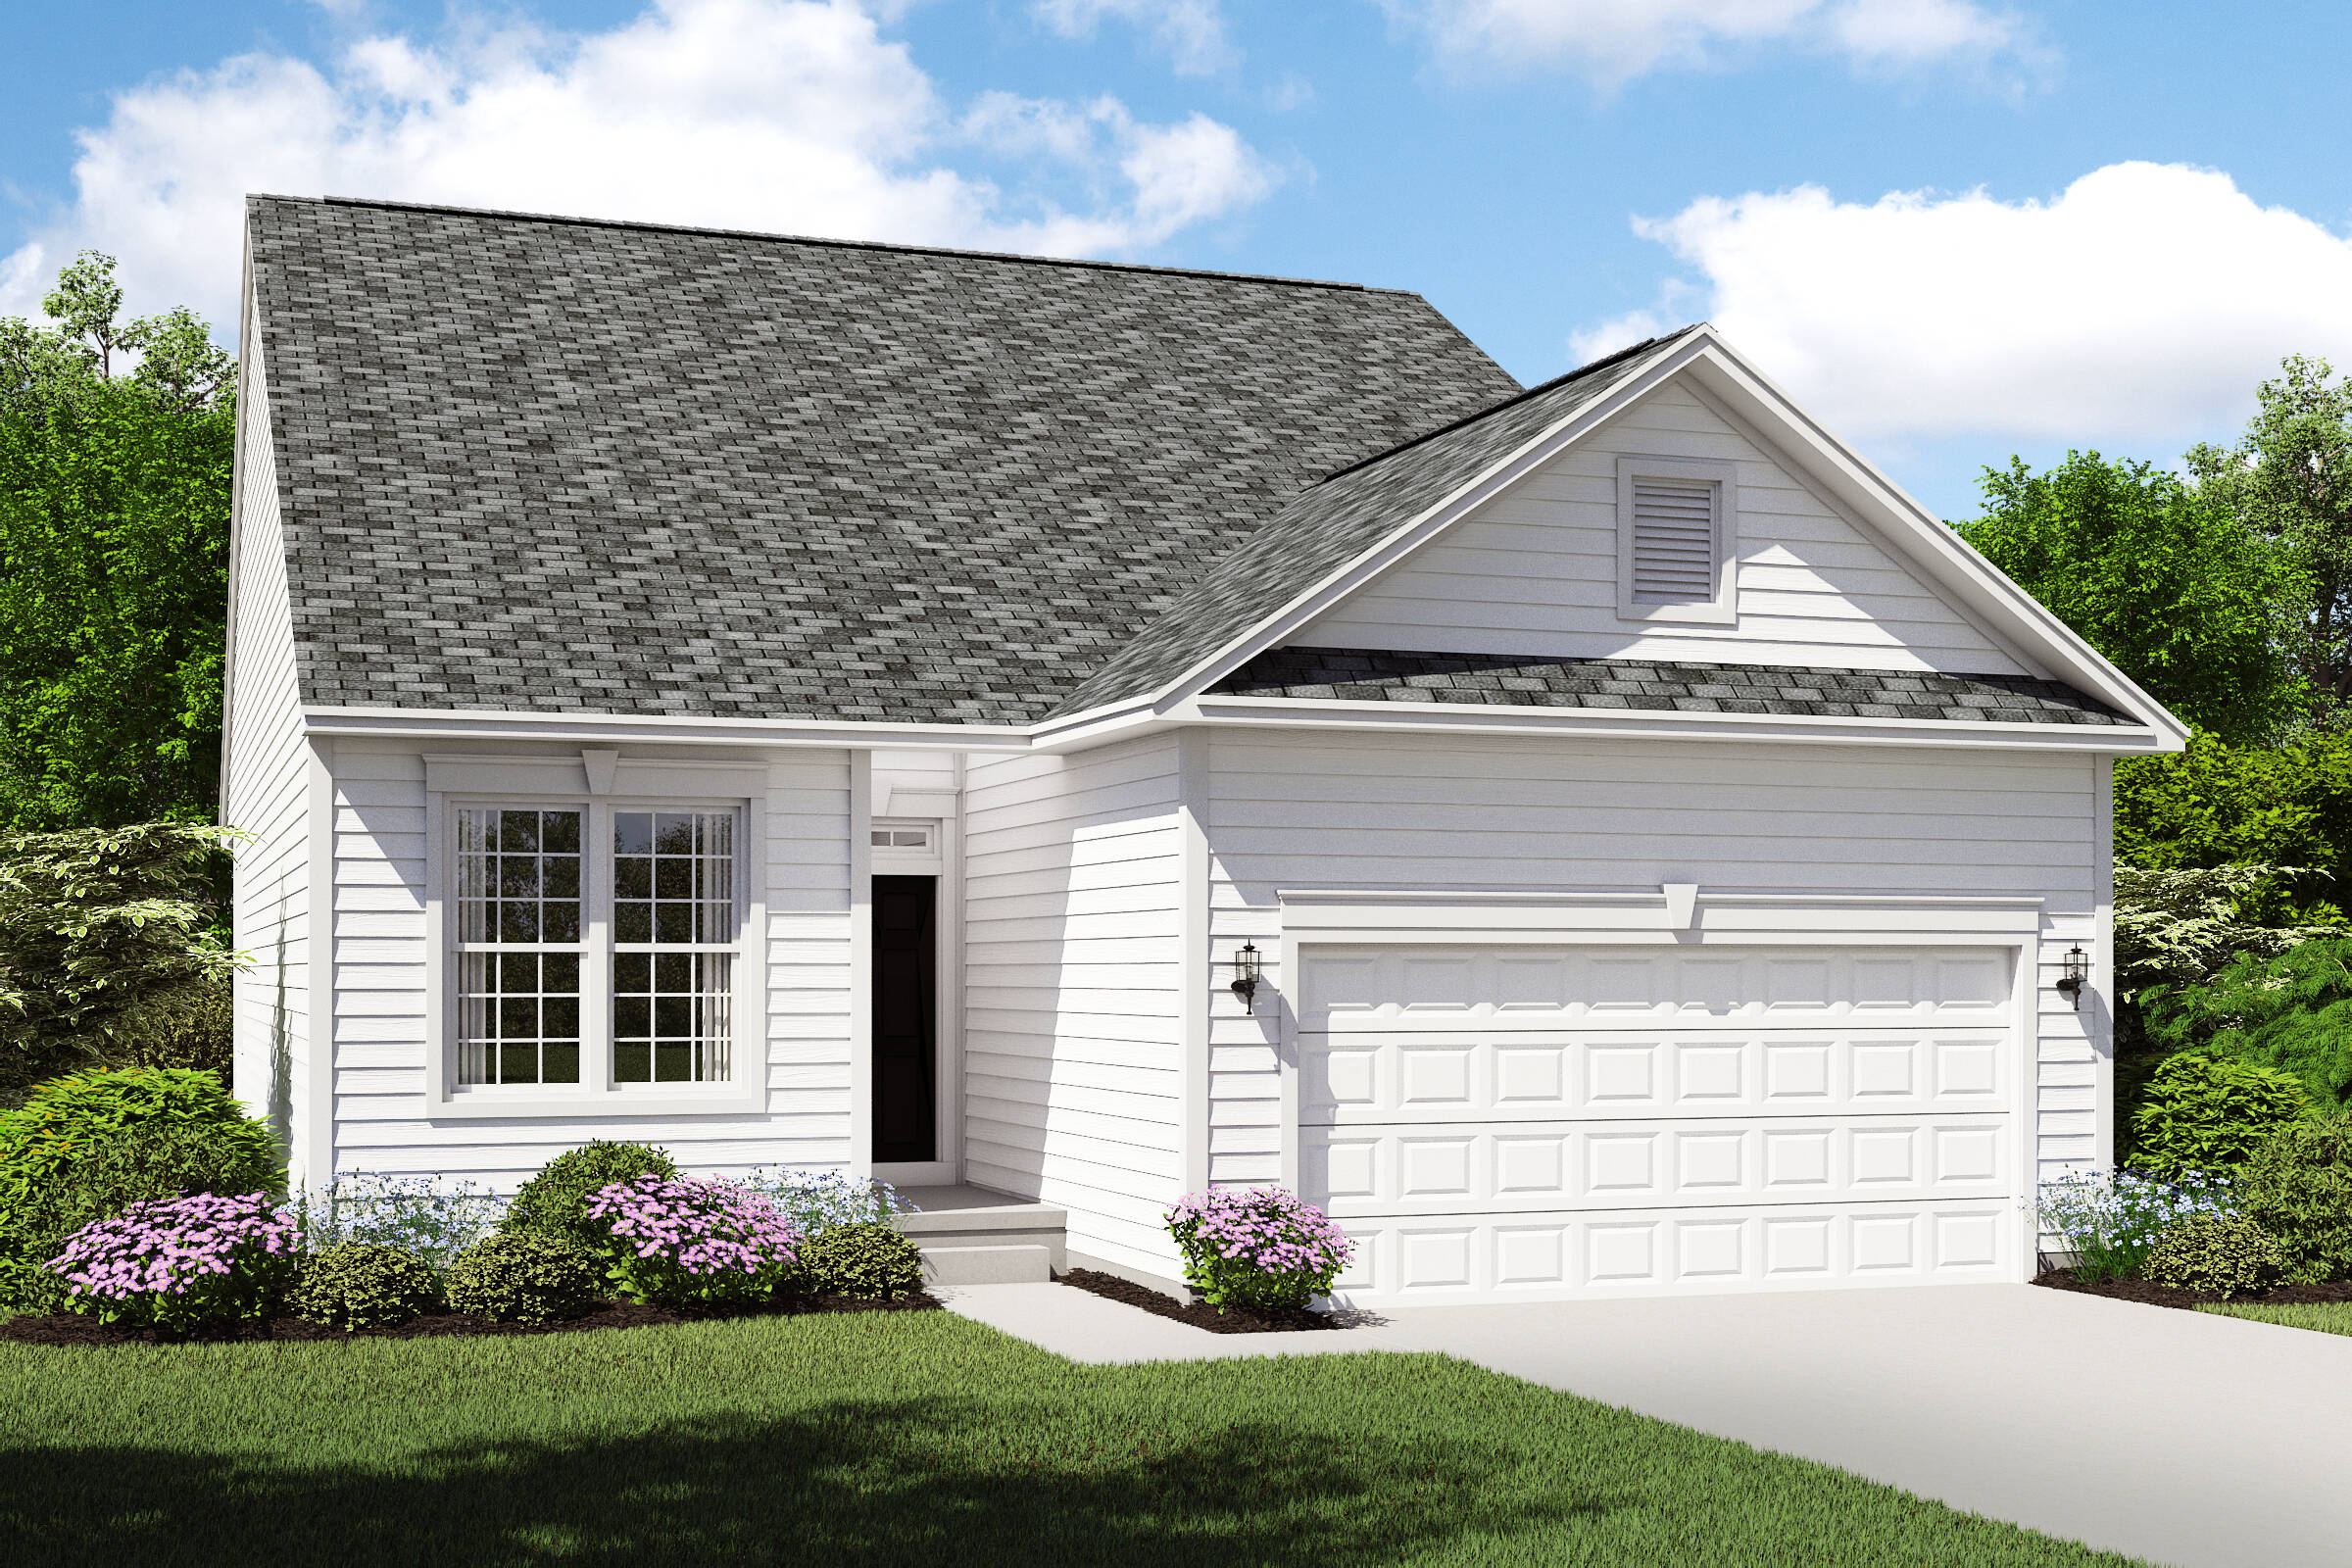 athens bs homes for sale northeast ohio